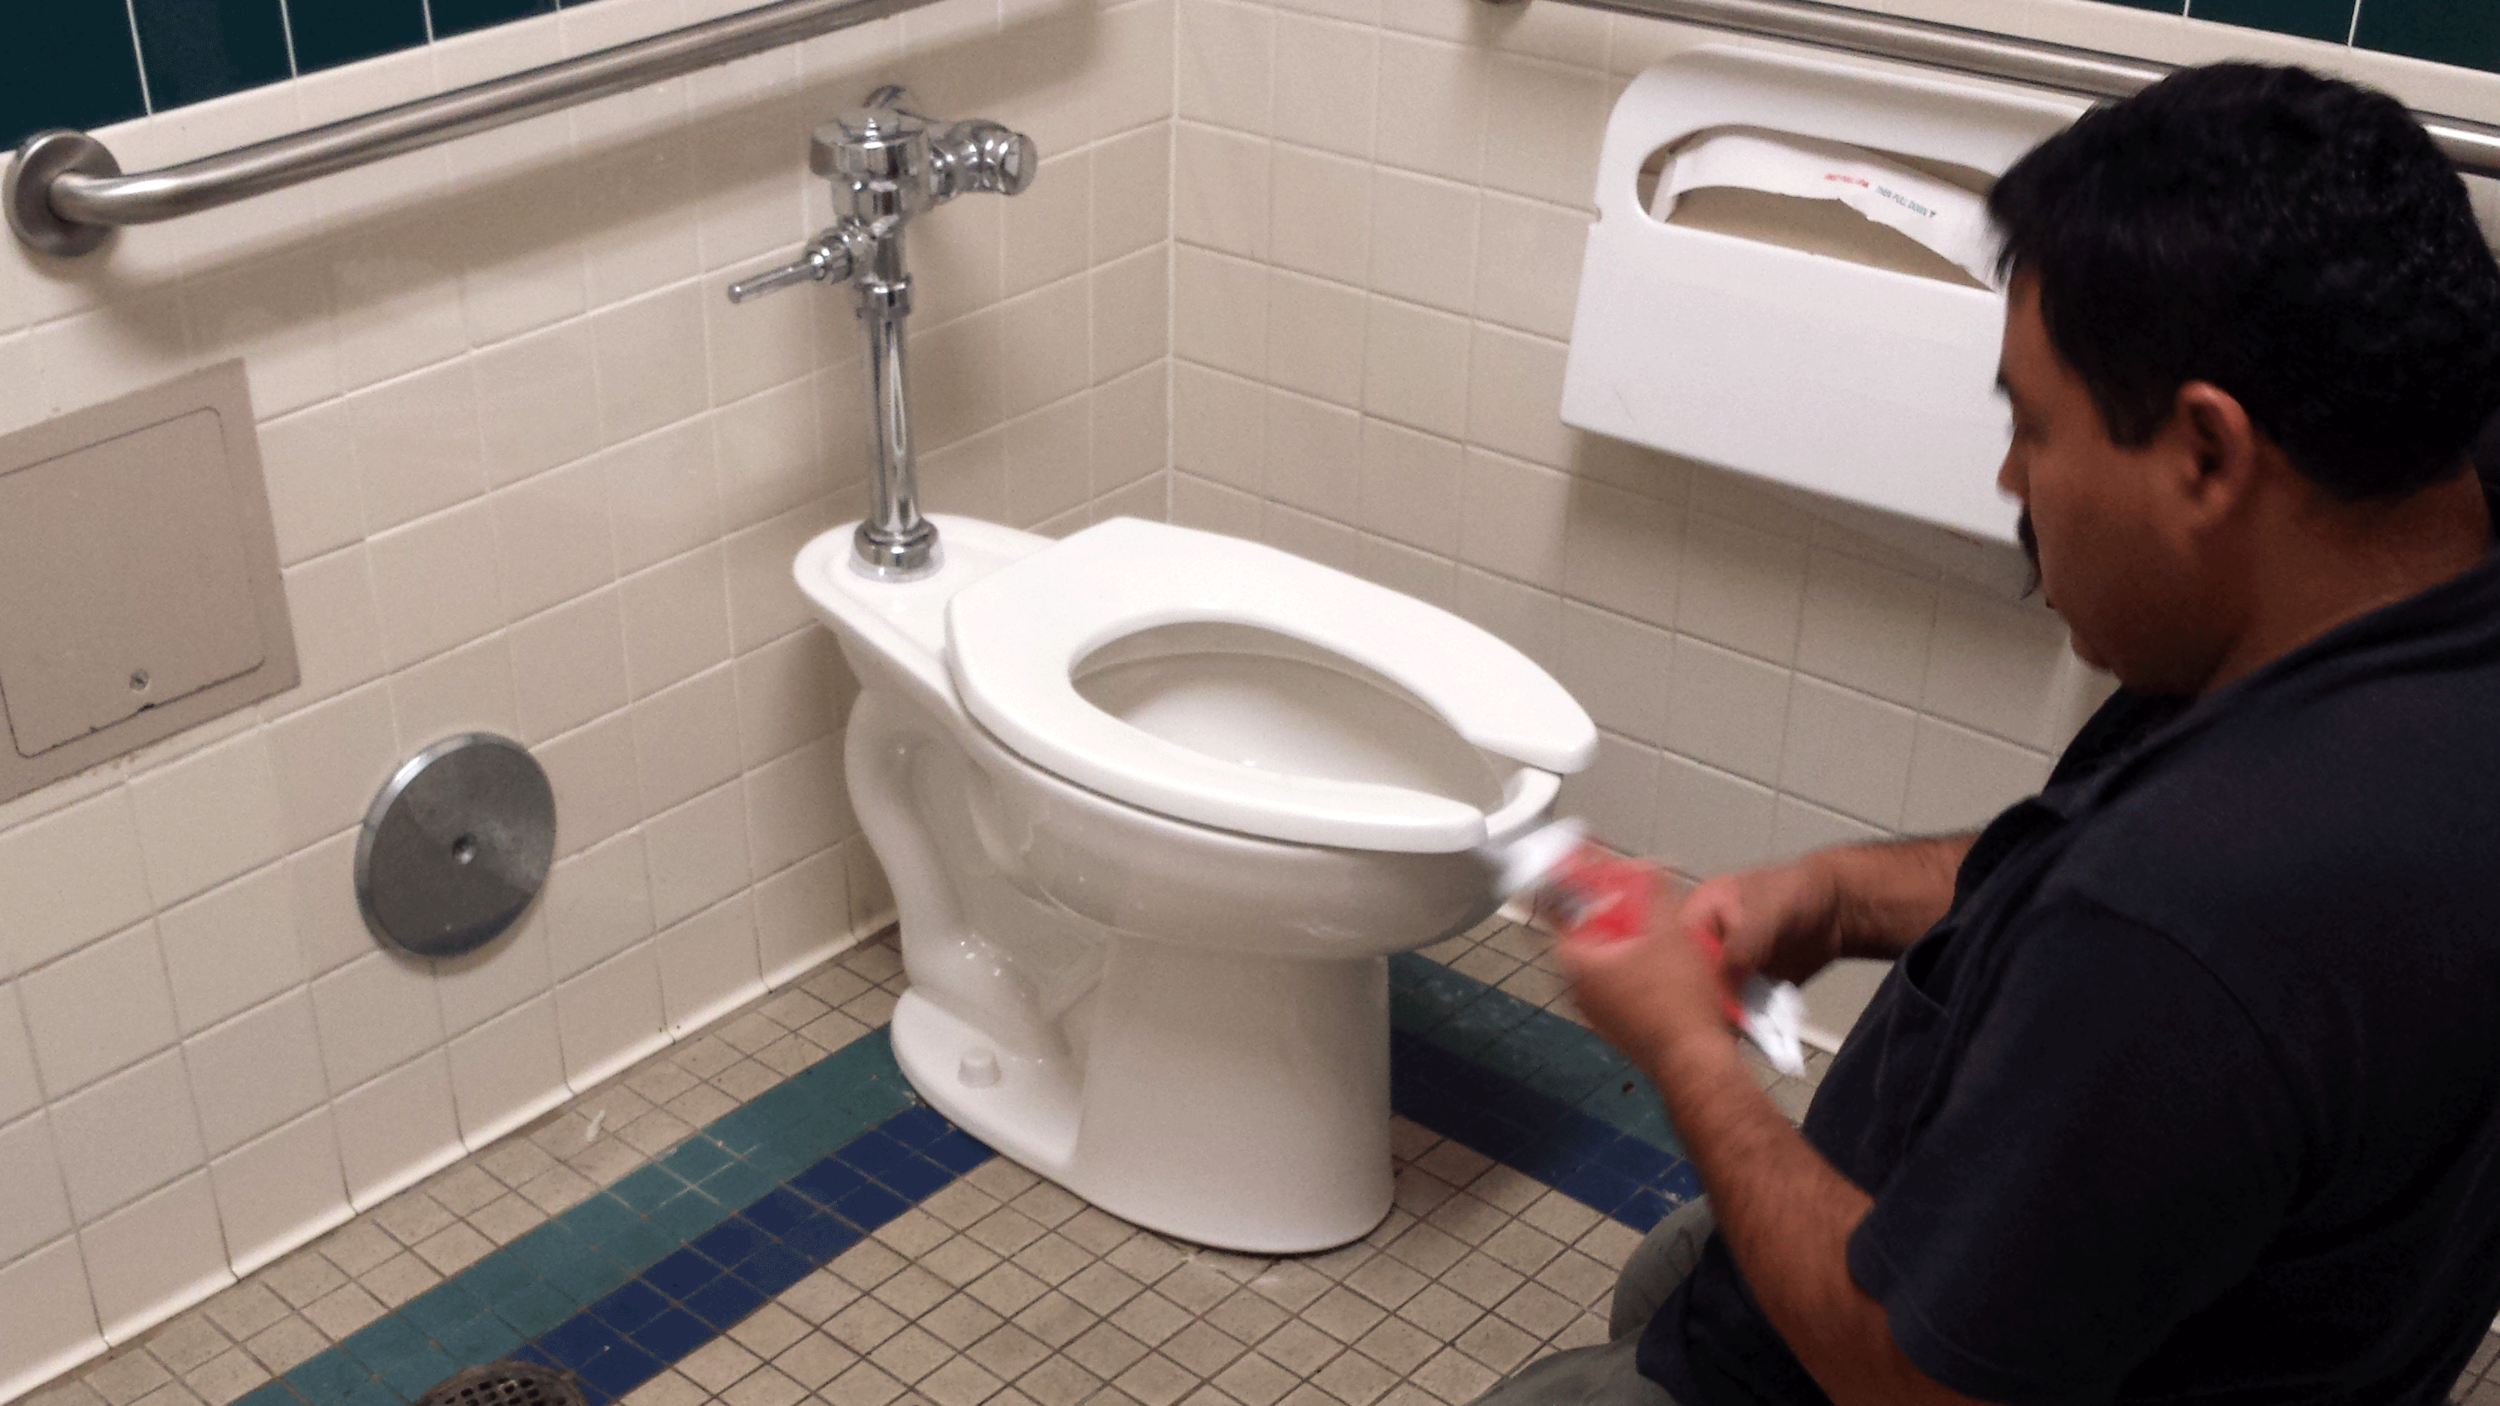 Installing toilets at a commercial location after hours.